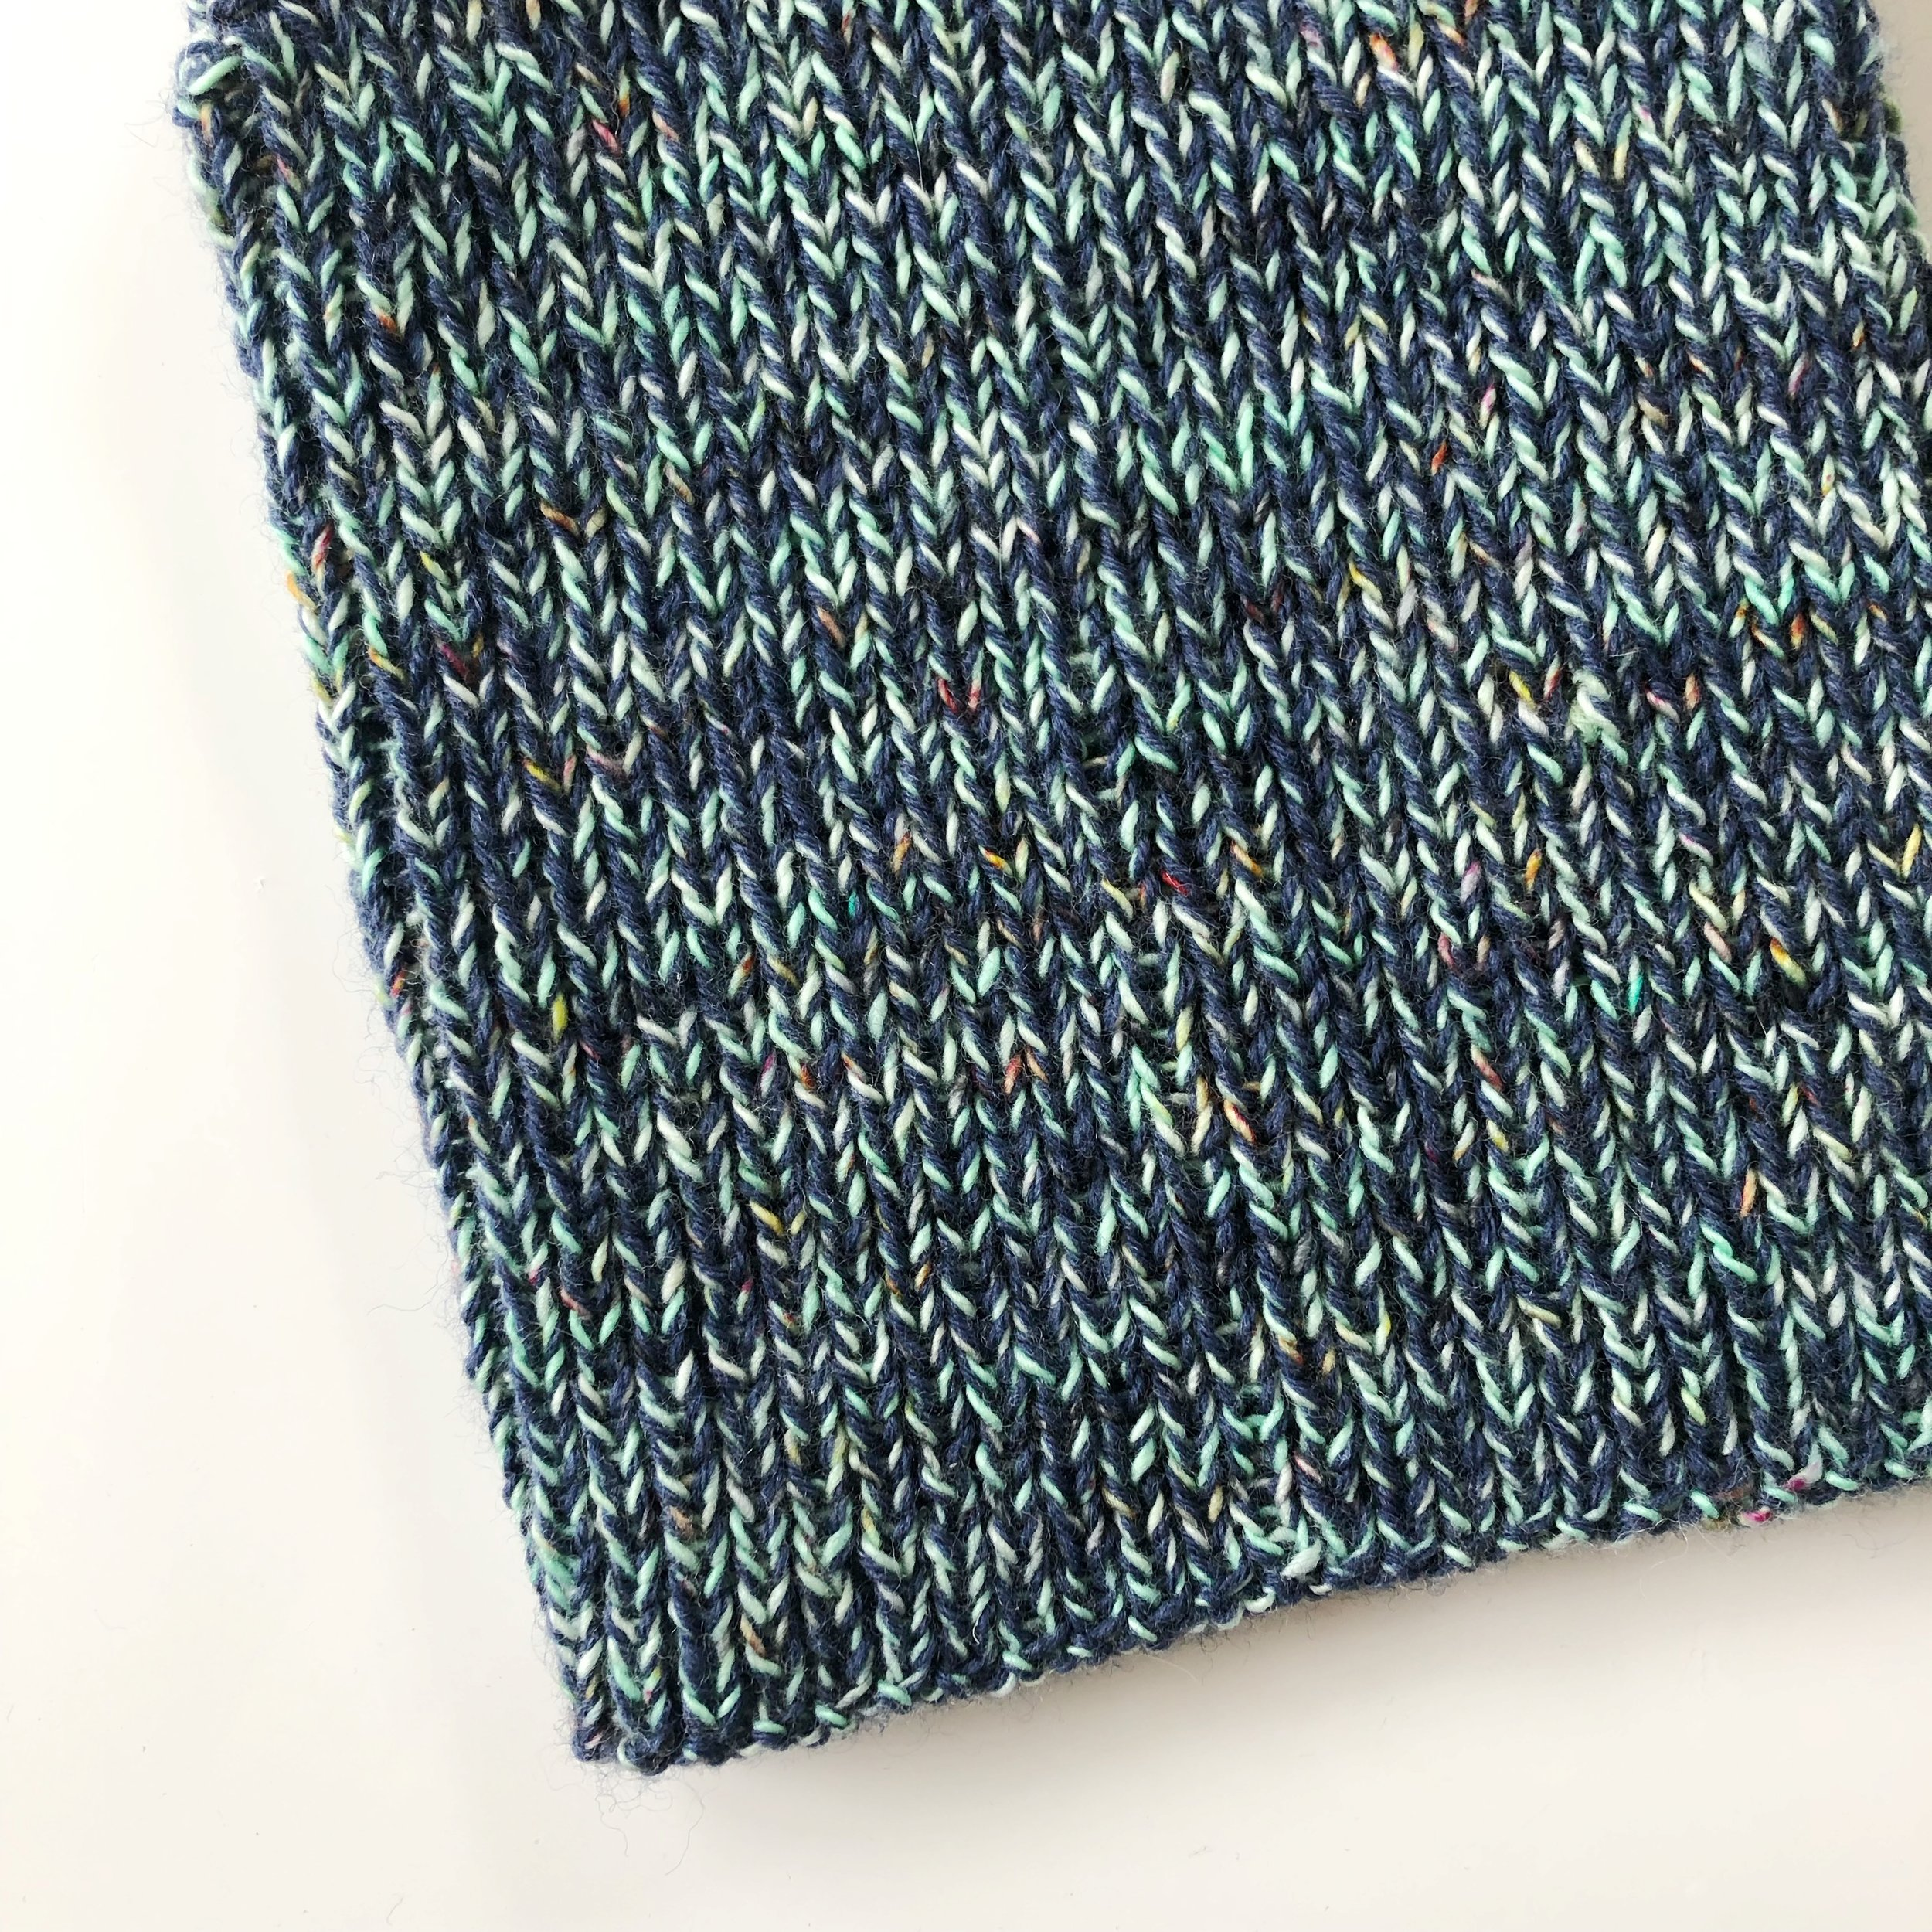 Knitdiaries-make-it-fitted-make-it-slouch-test-knit-2.JPG